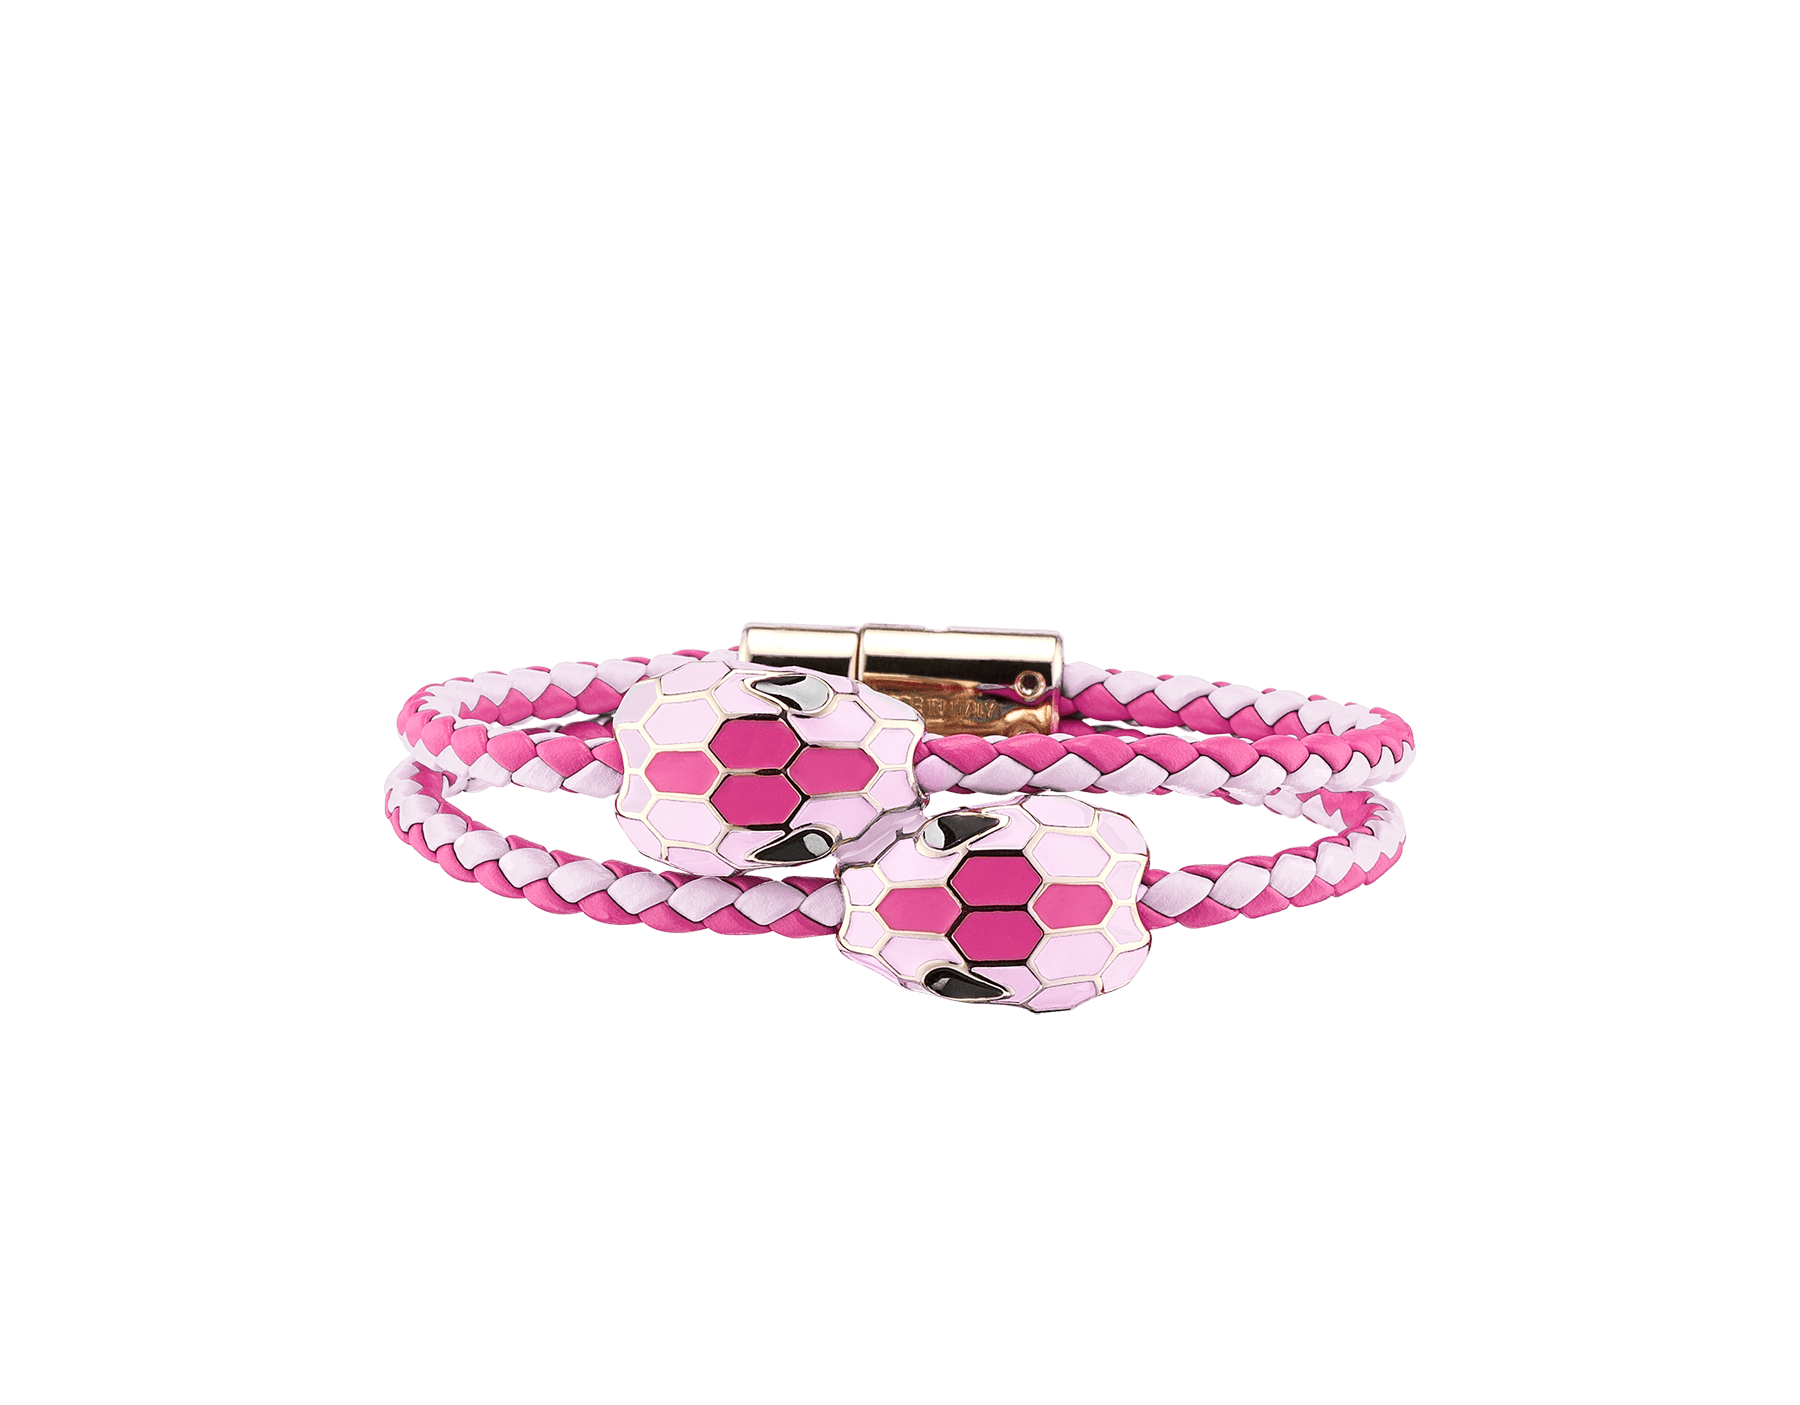 Serpenti Forever double braid bracelet in flash amethyst and rosa di francia woven calf leather with a double snakehead décor in rosa di francia and flash amethyst enamel. NewDoubleBraid-WCL-FARdF image 1